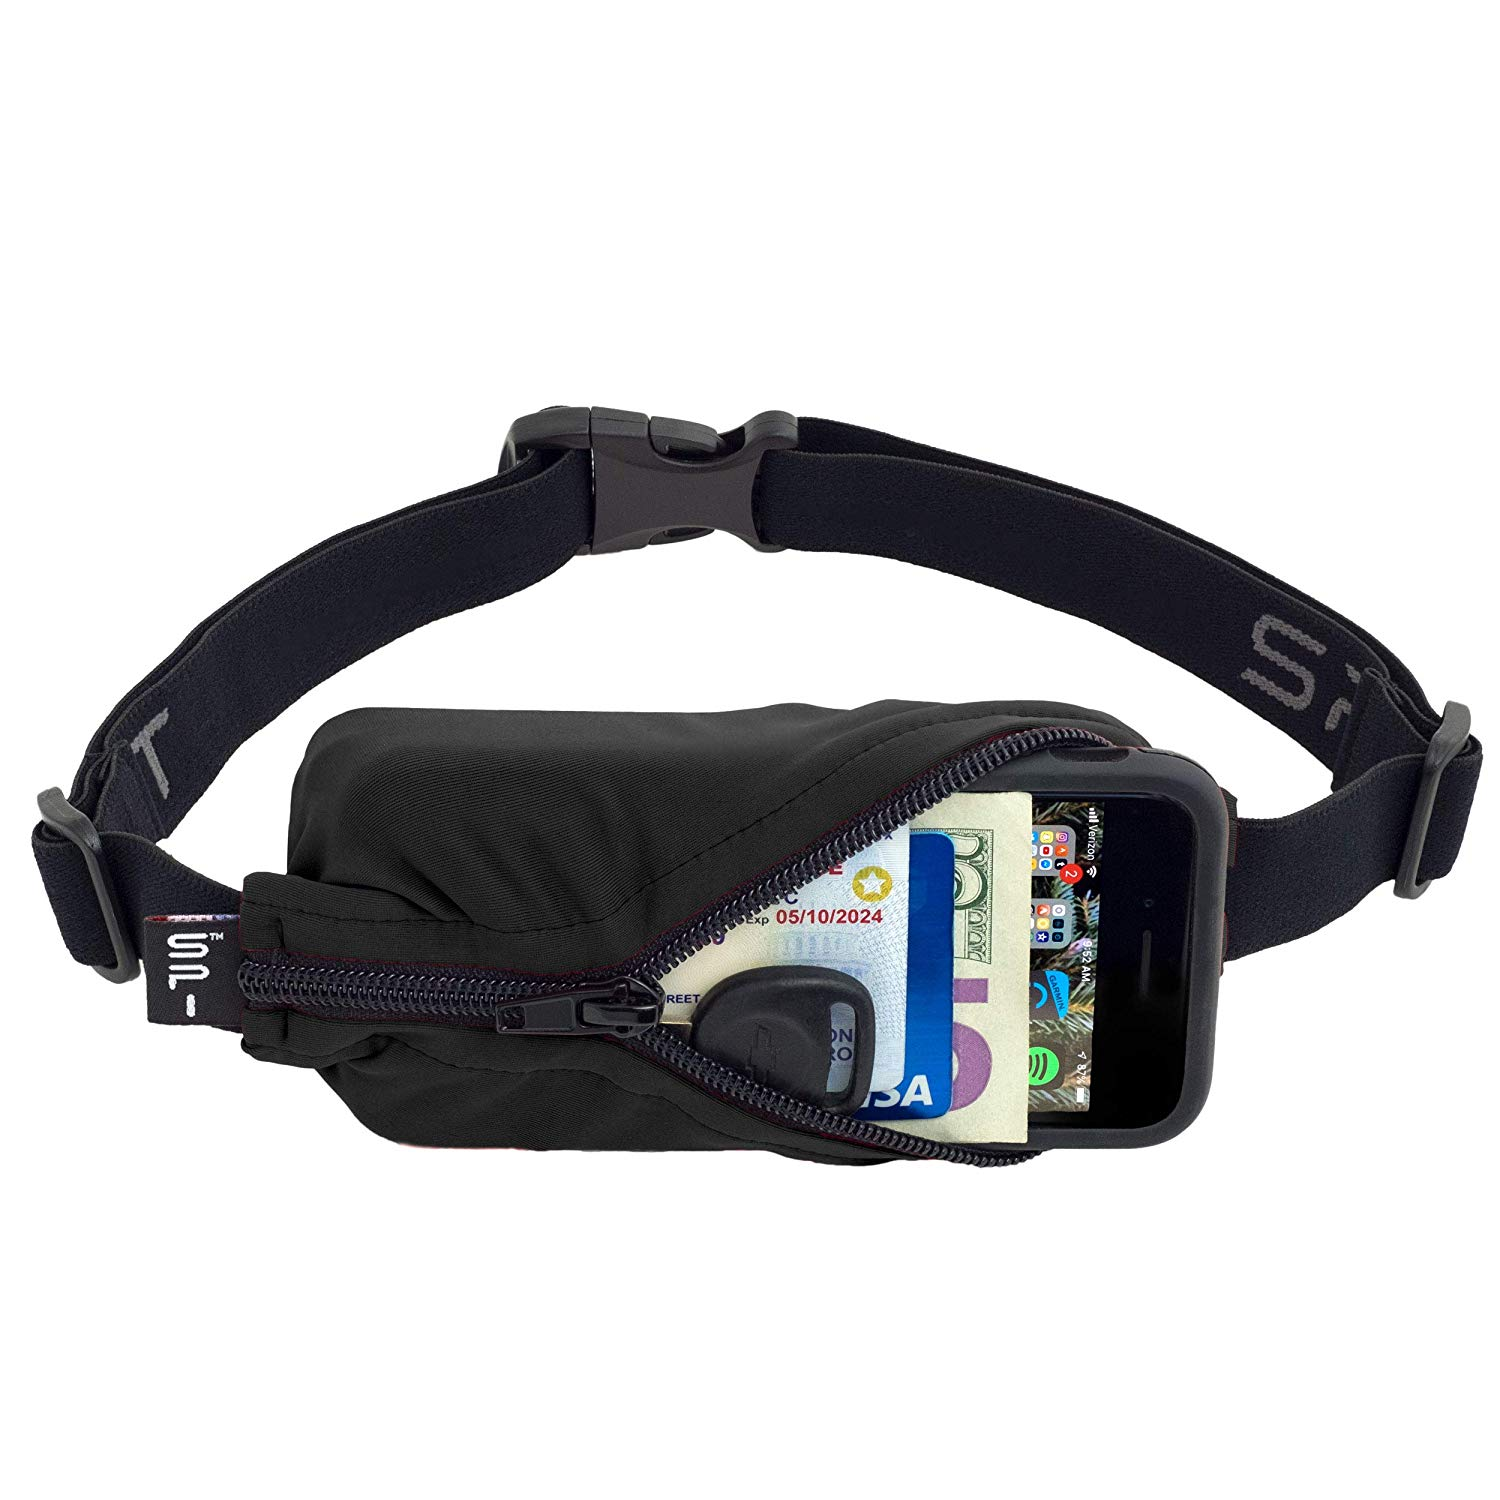 No-Bounce Waist Bag for Runners Athletes Men and Women